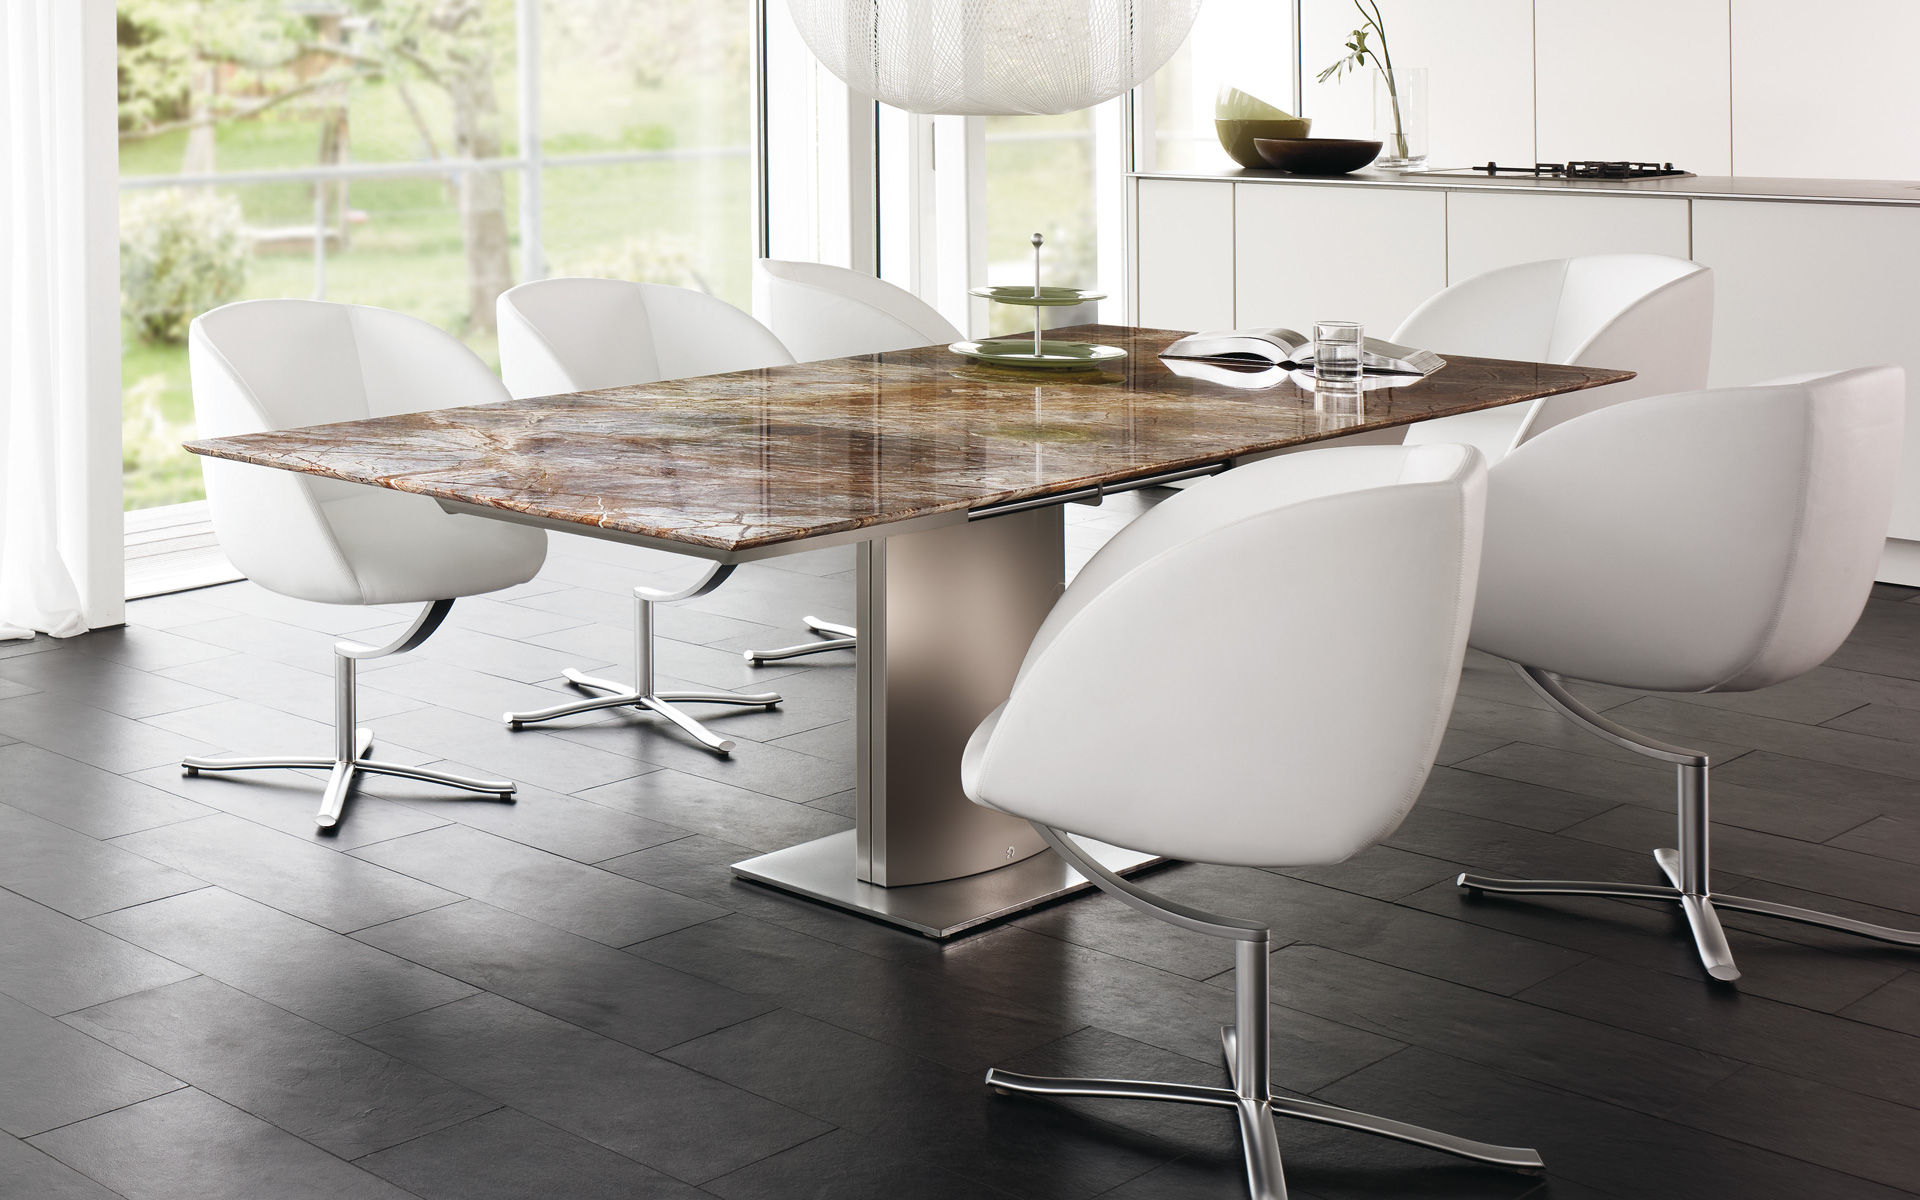 Contemporary stone dining table - Contemporary Dining Table Stone Oval Rectangular 1224 Adler Ii By Georg Appeltshauser Draenert